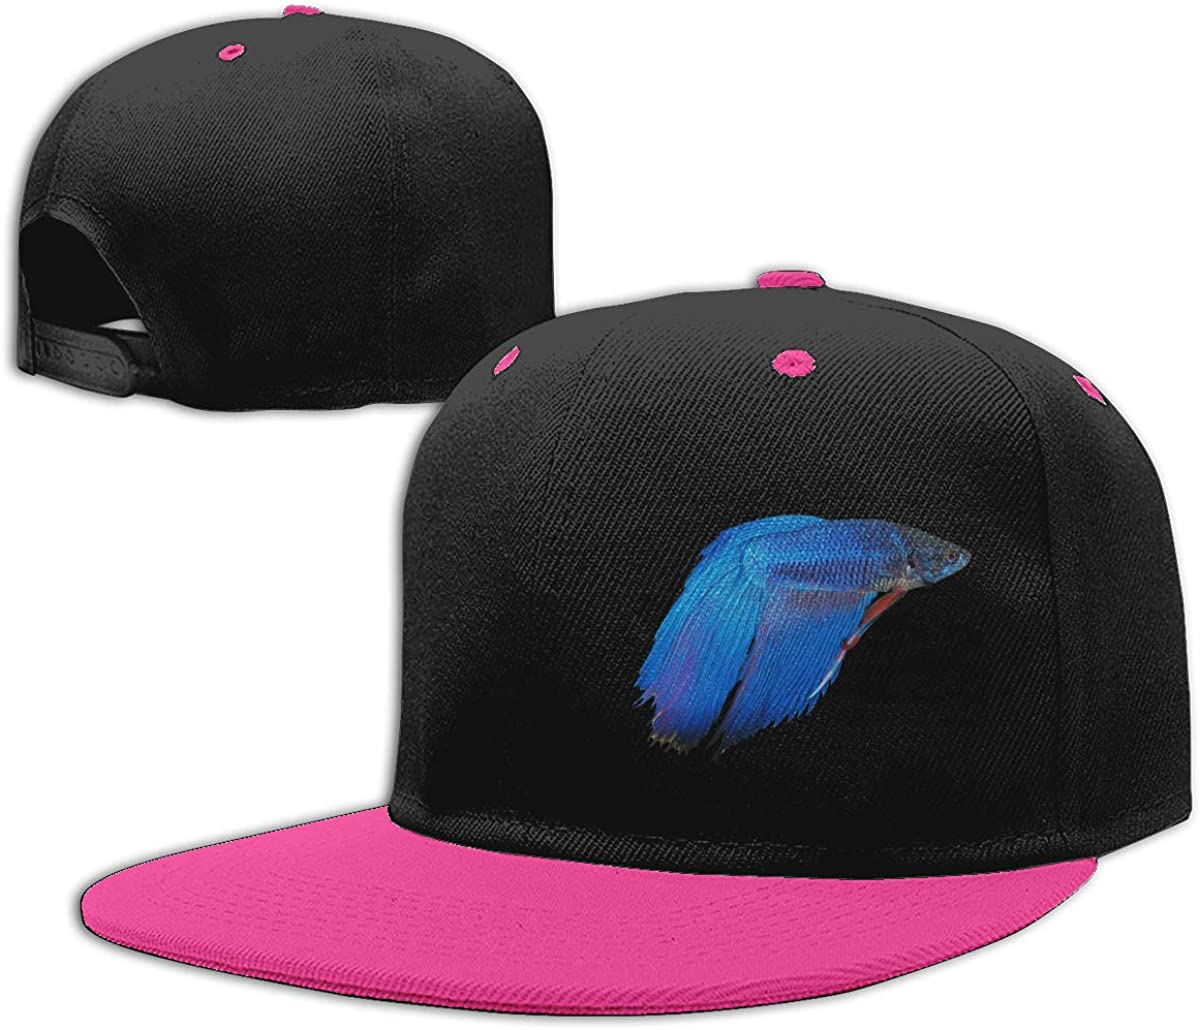 Blue Betta Fish Printed Flat Bill Baseball Caps NMG-01 Men Womens Hiphop Cap